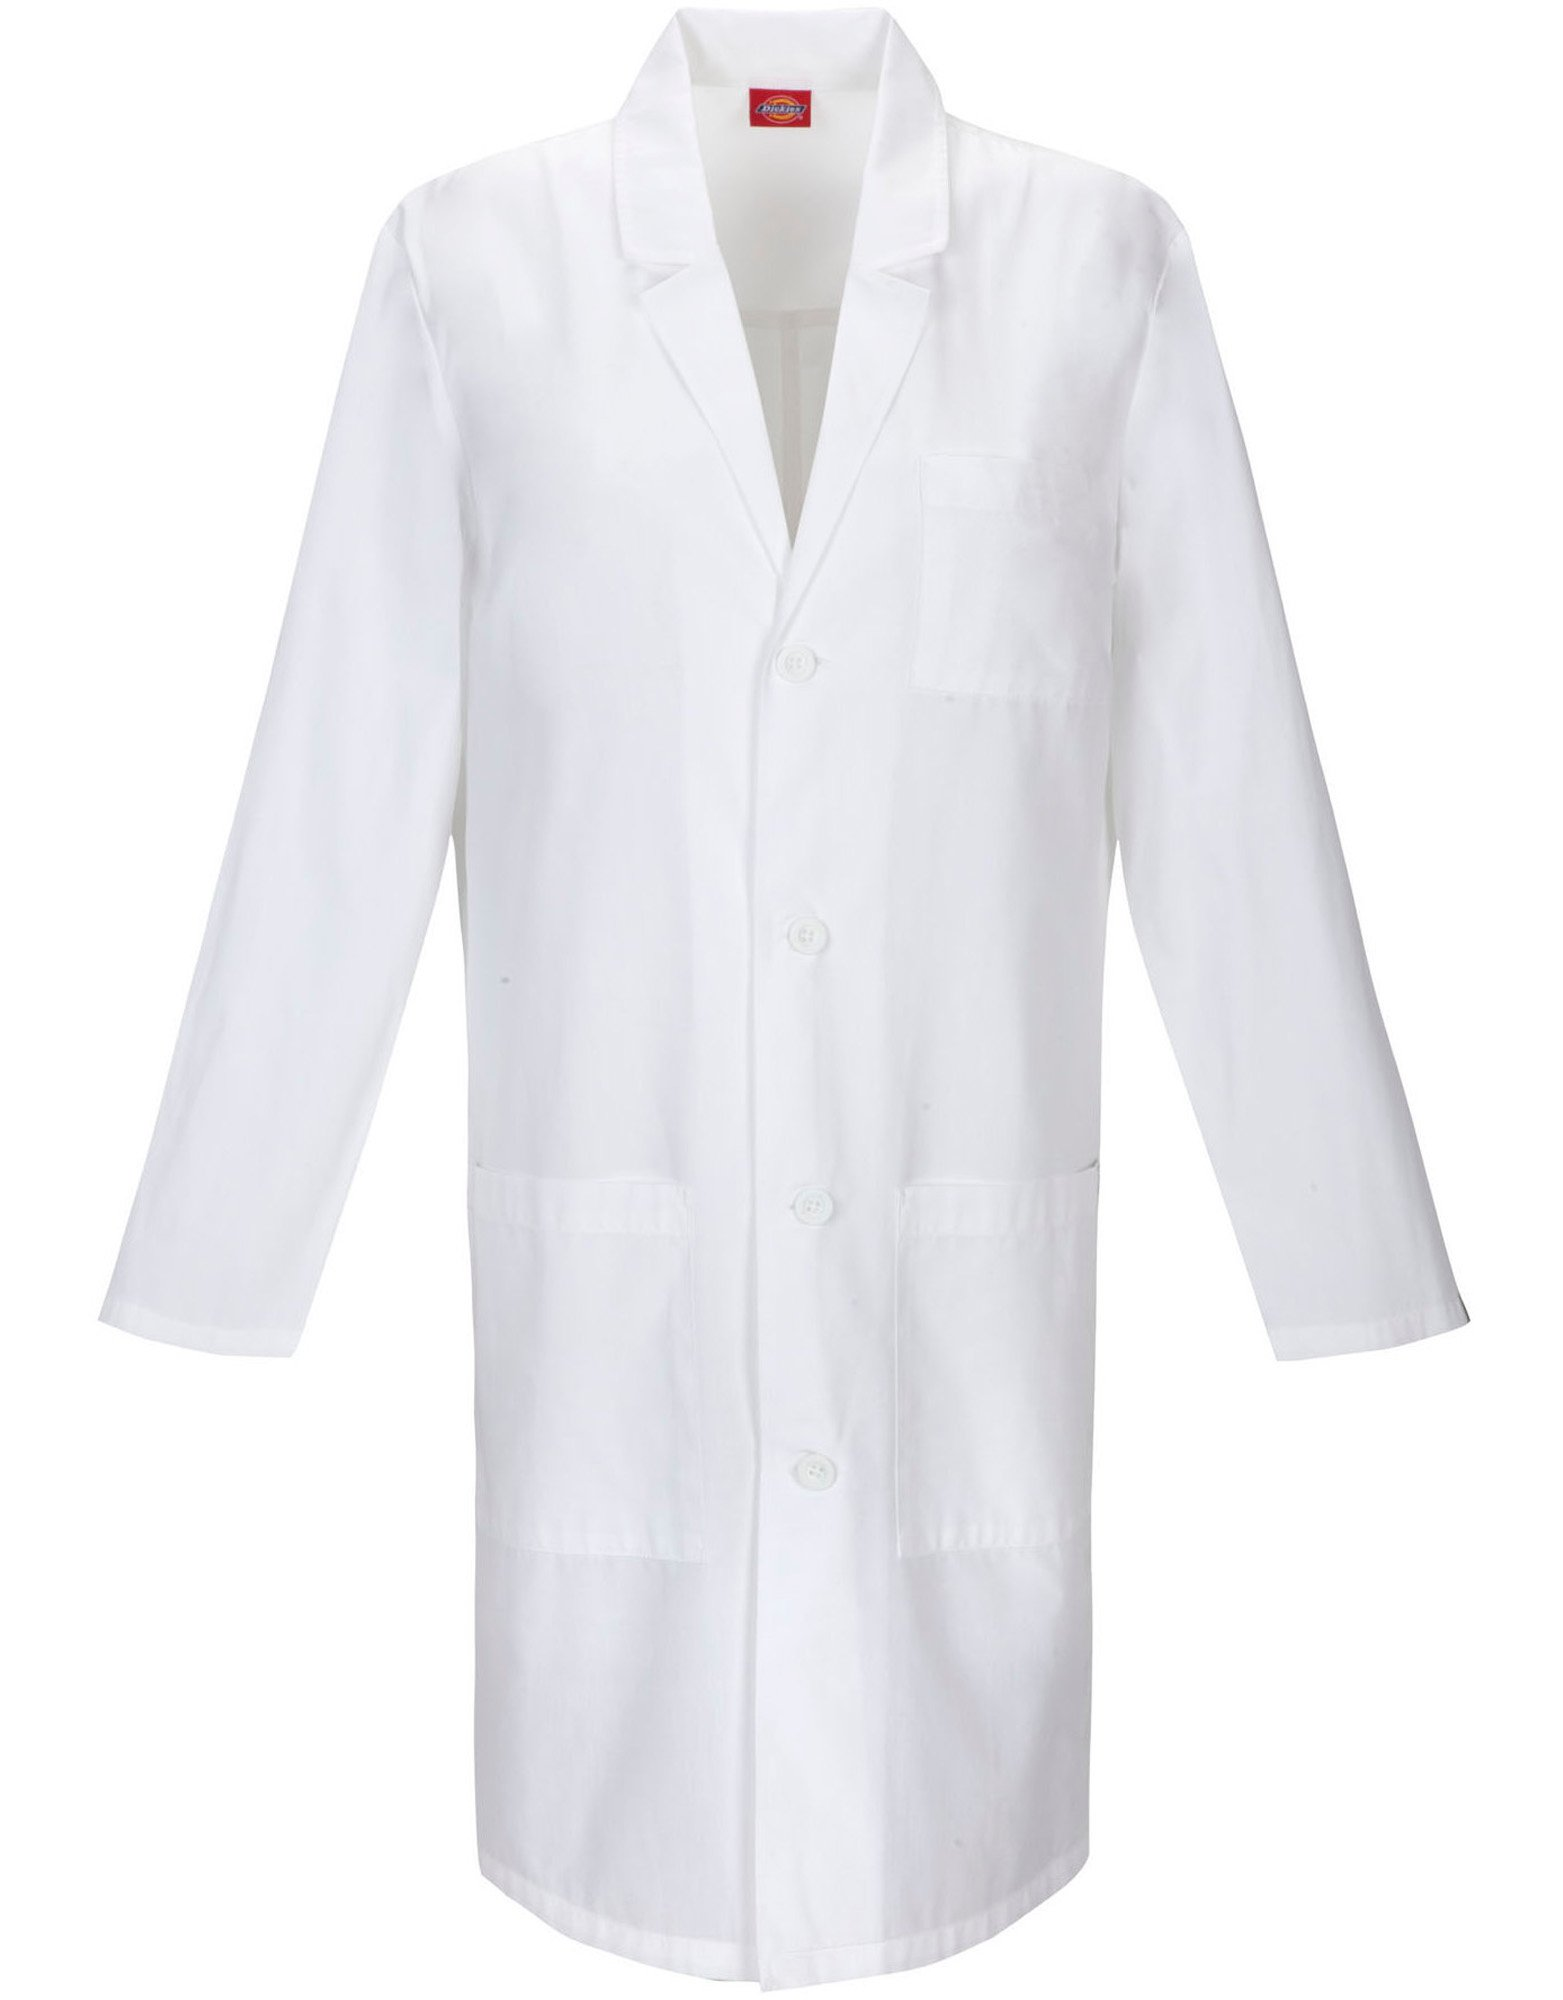 "Unisex EDS Signature 40"" Lab Coat - White (DWH)"